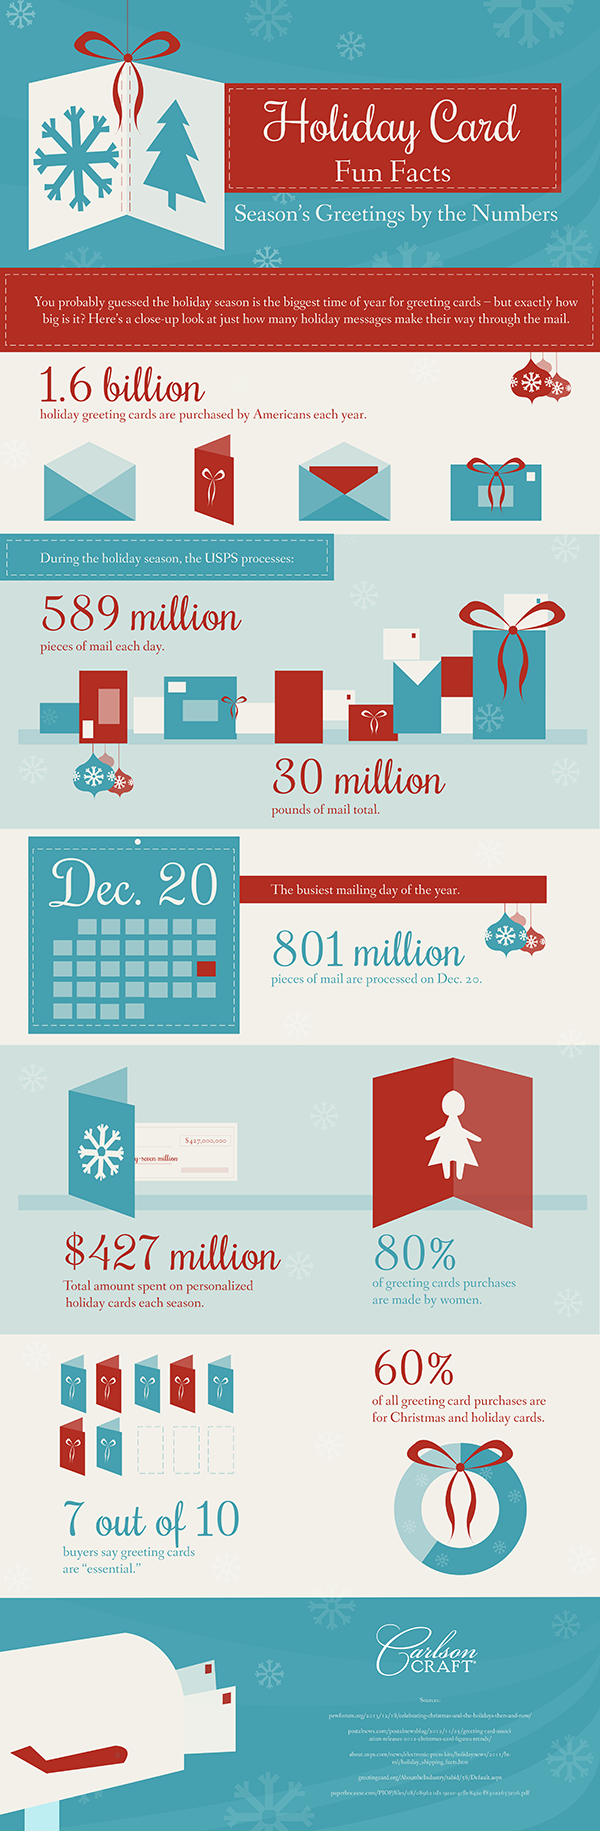 Fun facts about holiday cards